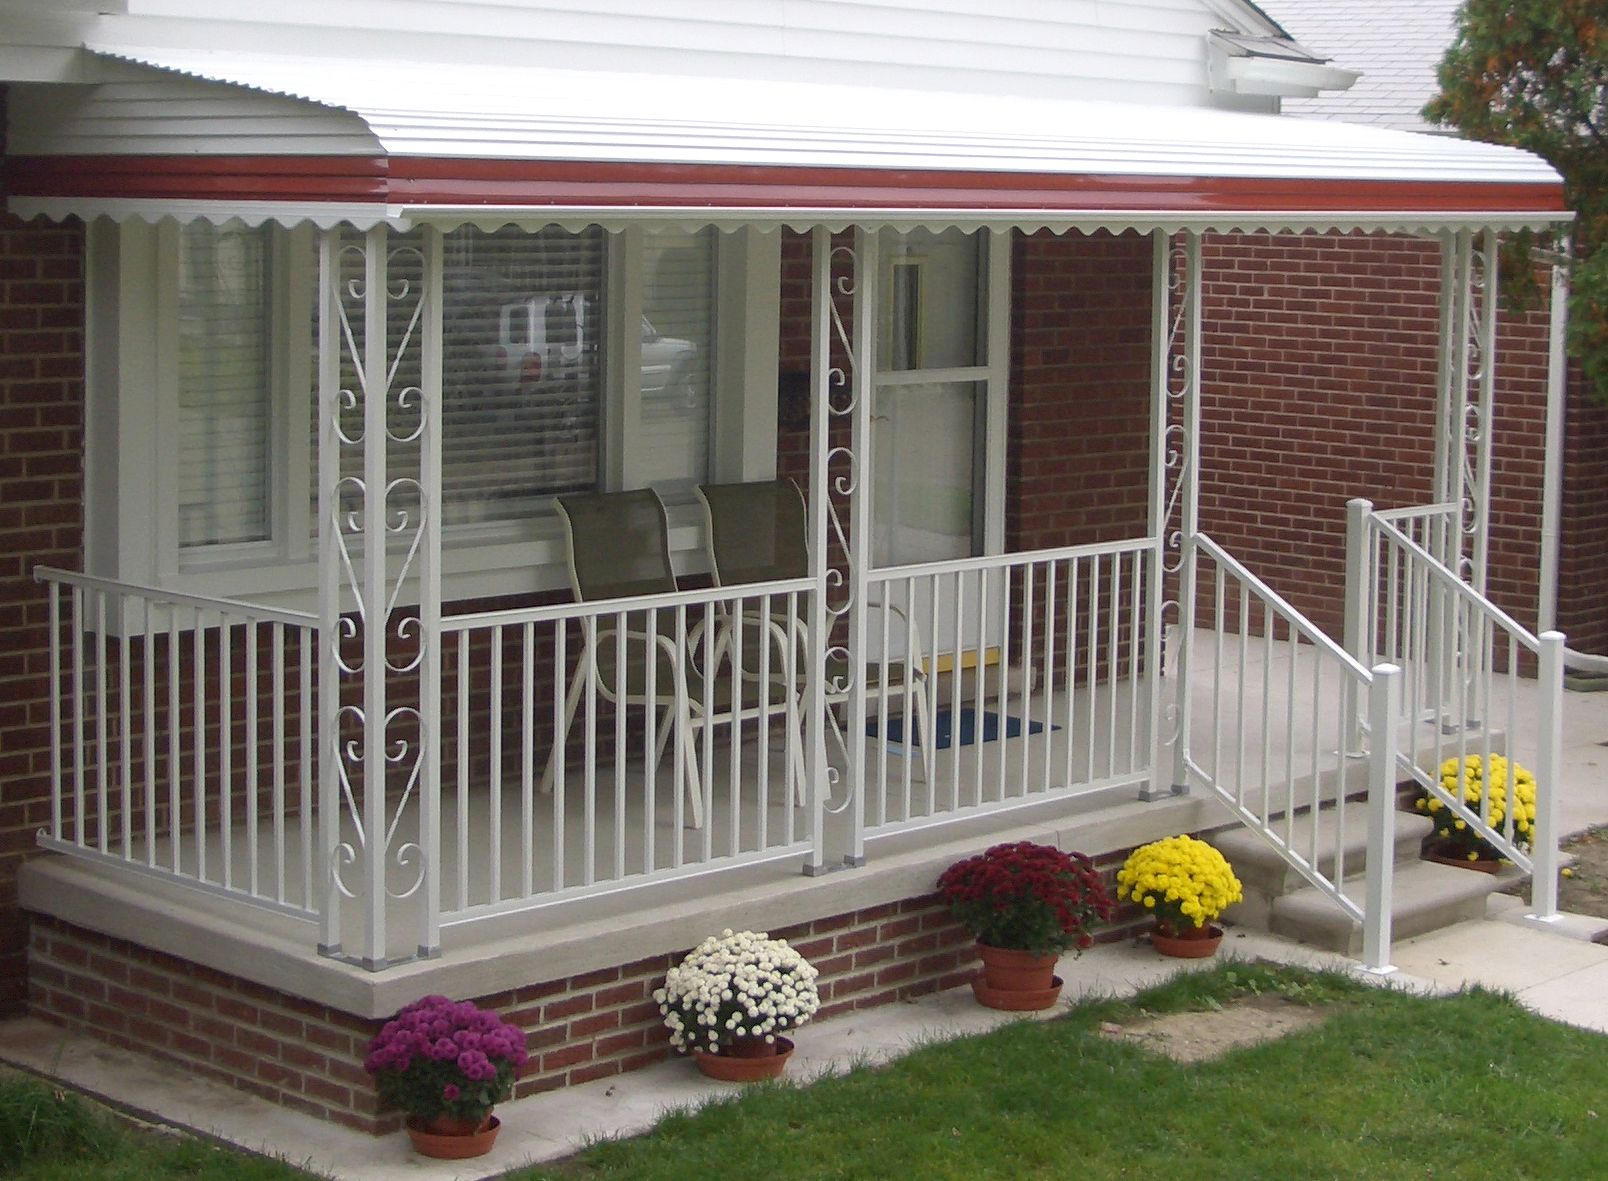 Step Down Aluminum Awning With Railing Window Awnings Carports Flat Pans W And Poly Roofs